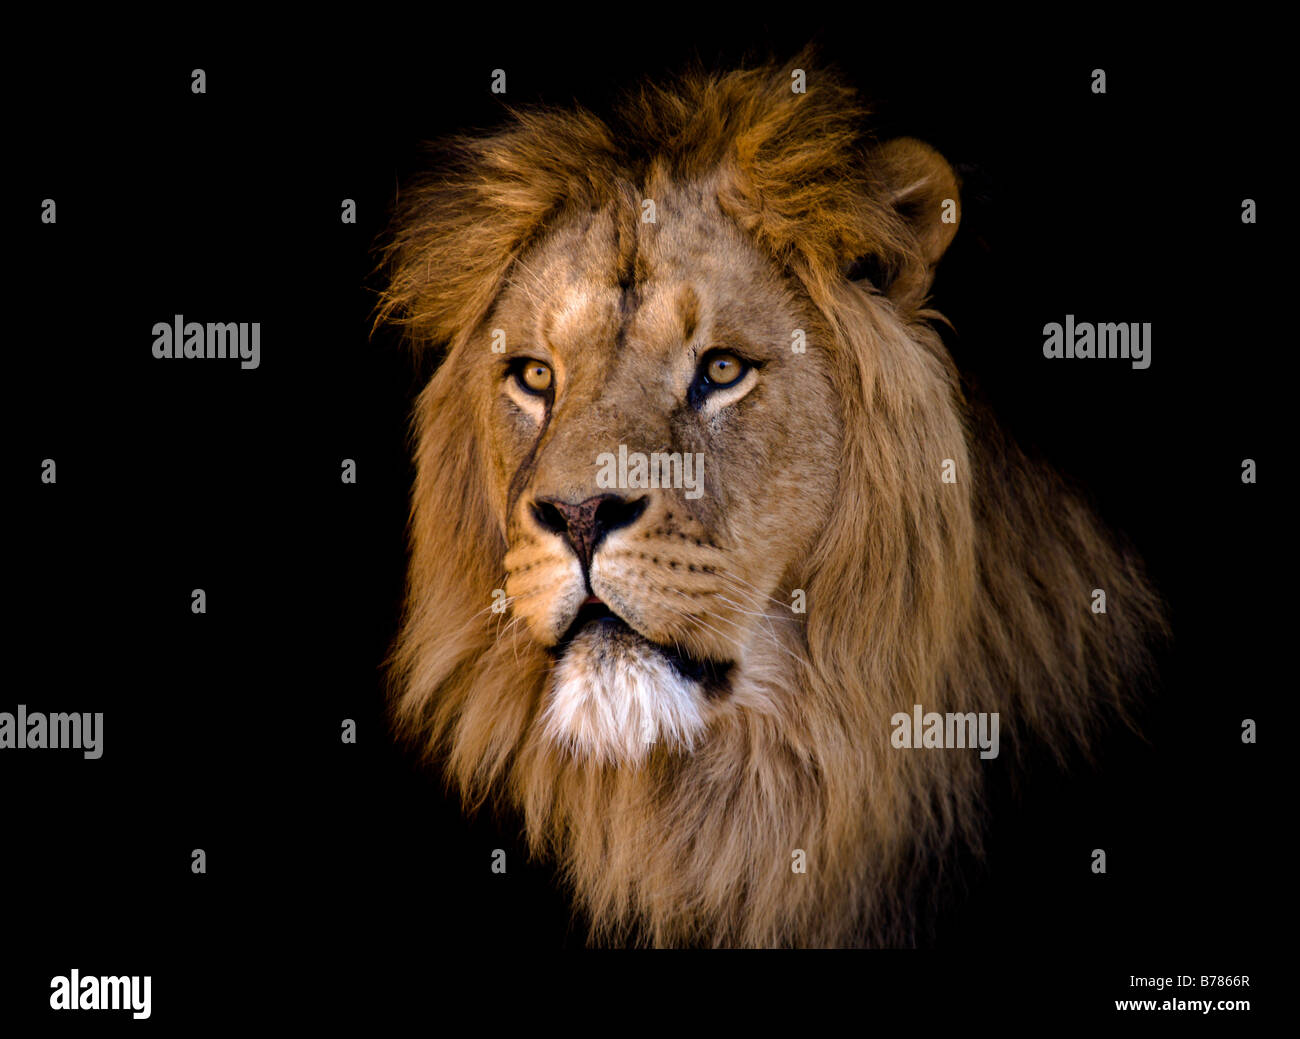 Portrait d'un grand homme d'Afrique lion Photo Stock